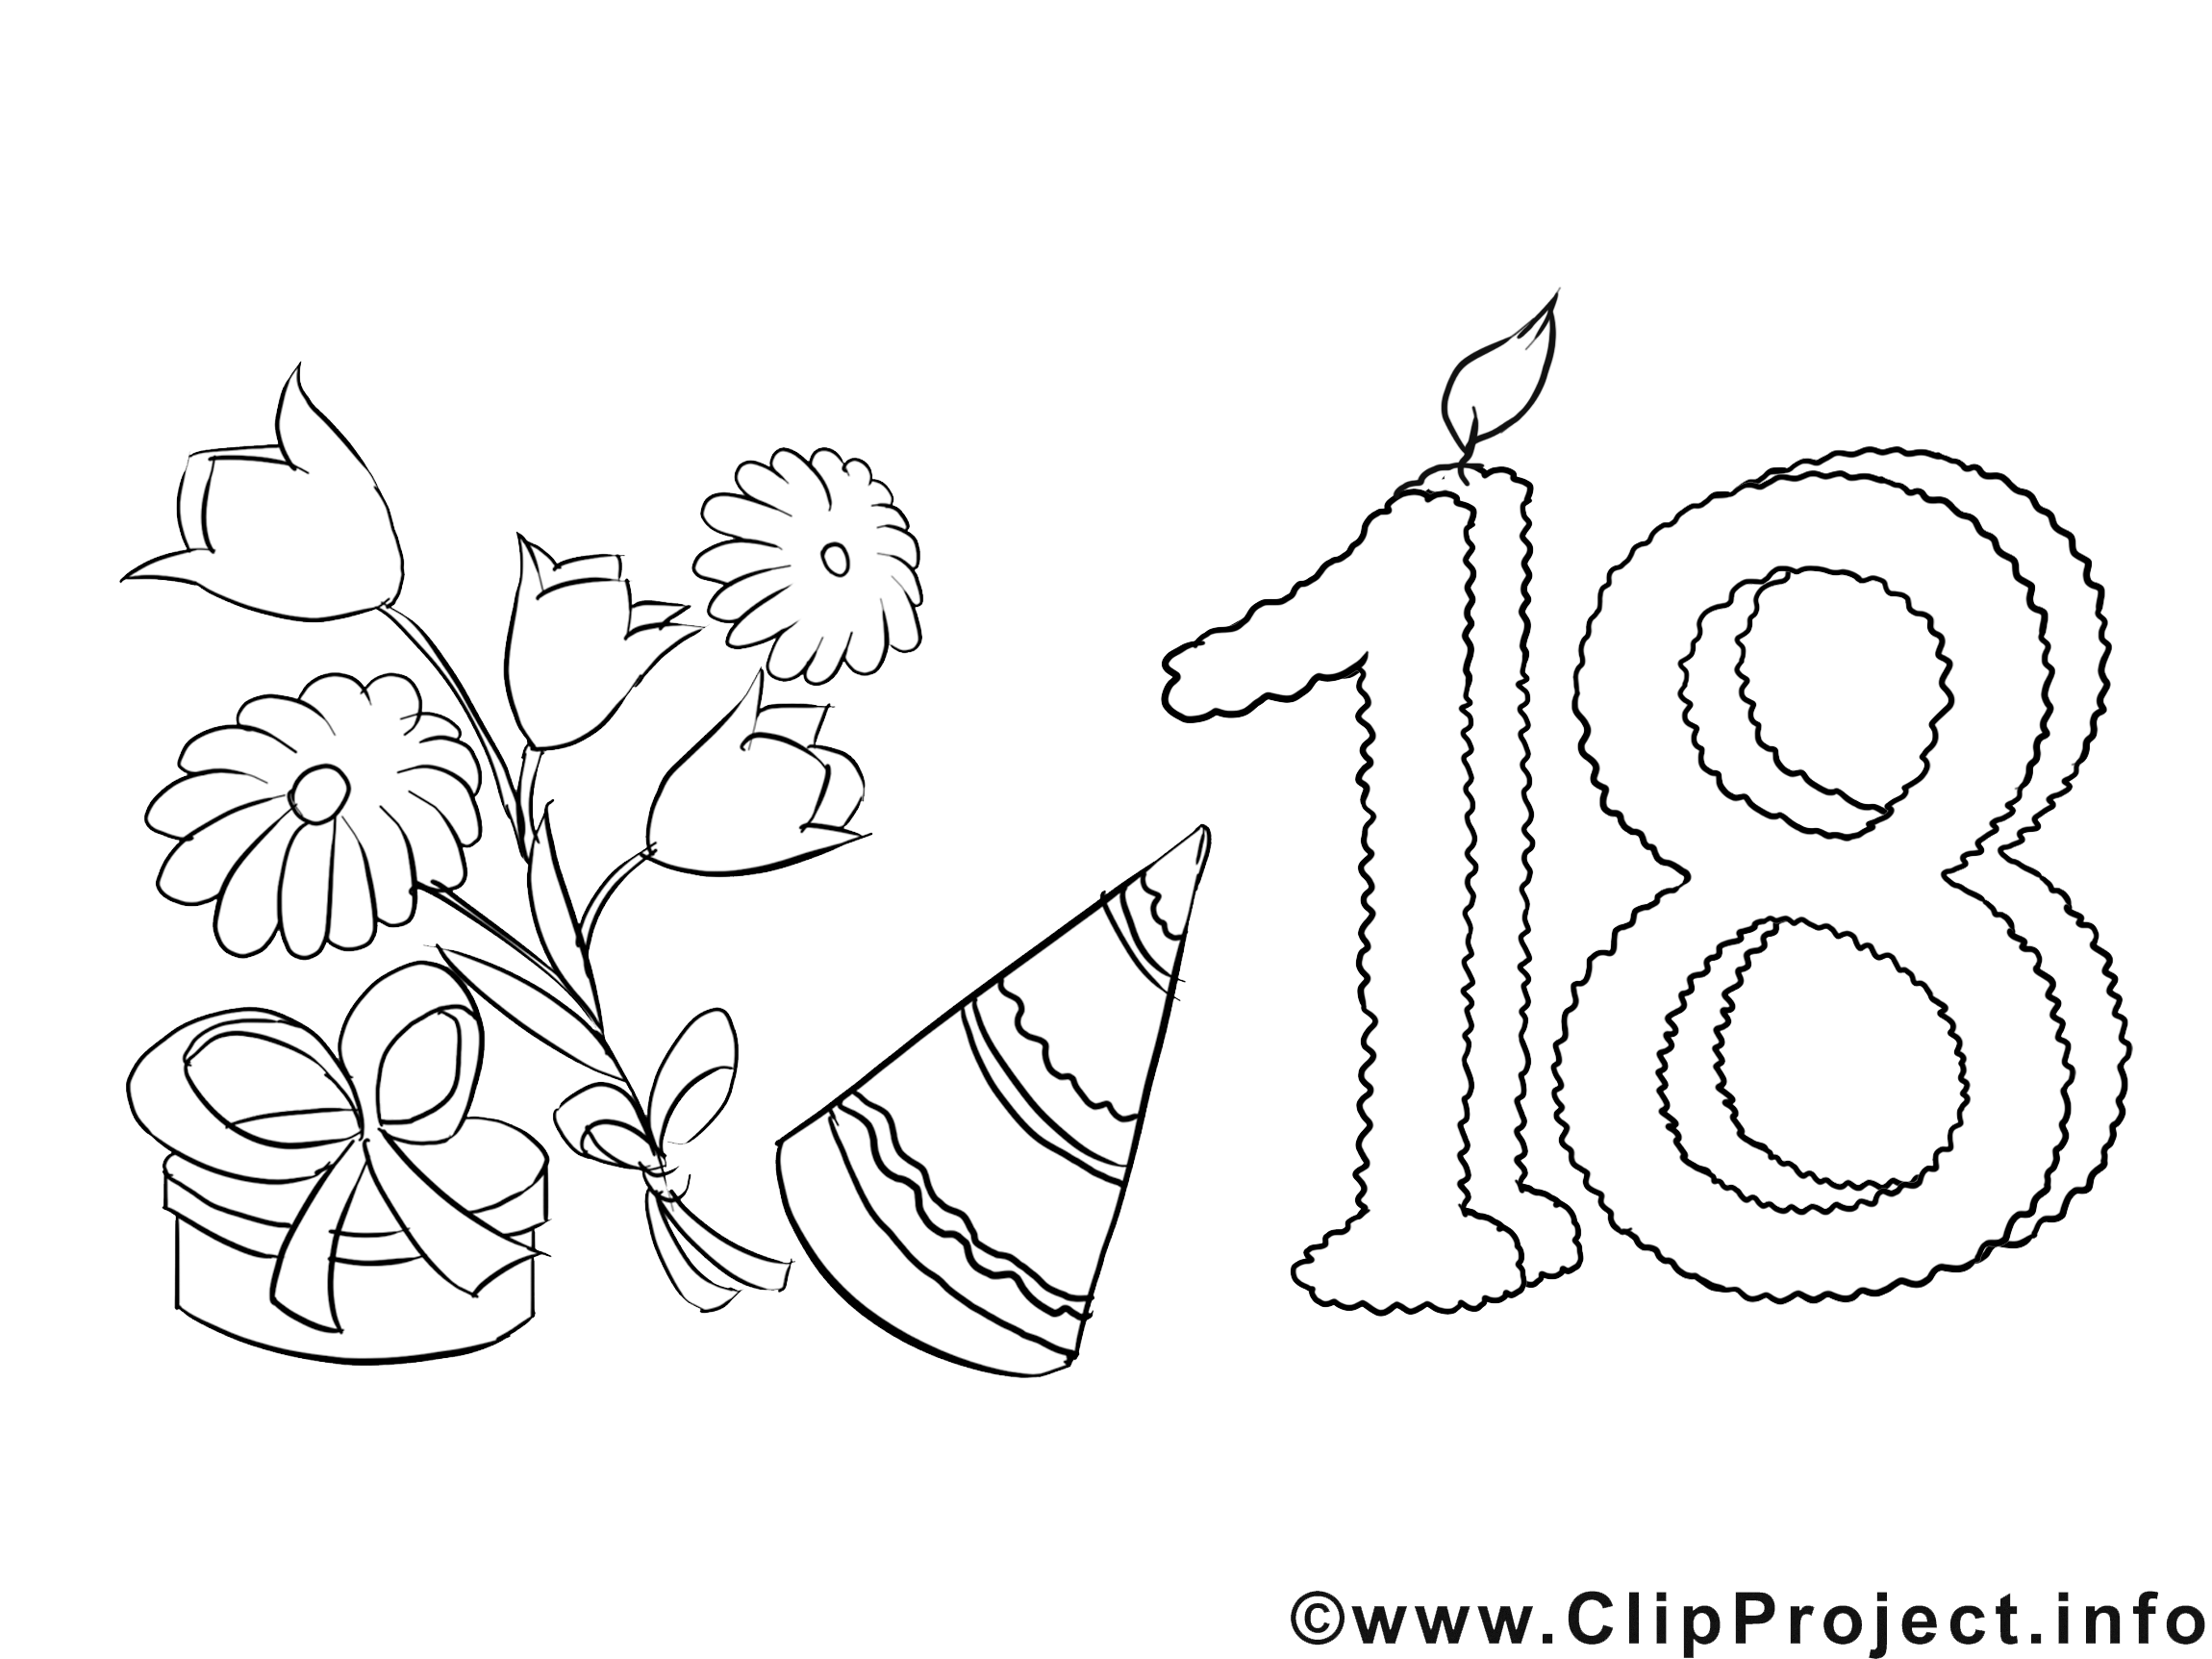 18 ans image coloriage invitations illustration invitations coloriages dessin picture - Dessin anniversaire 40 ans ...